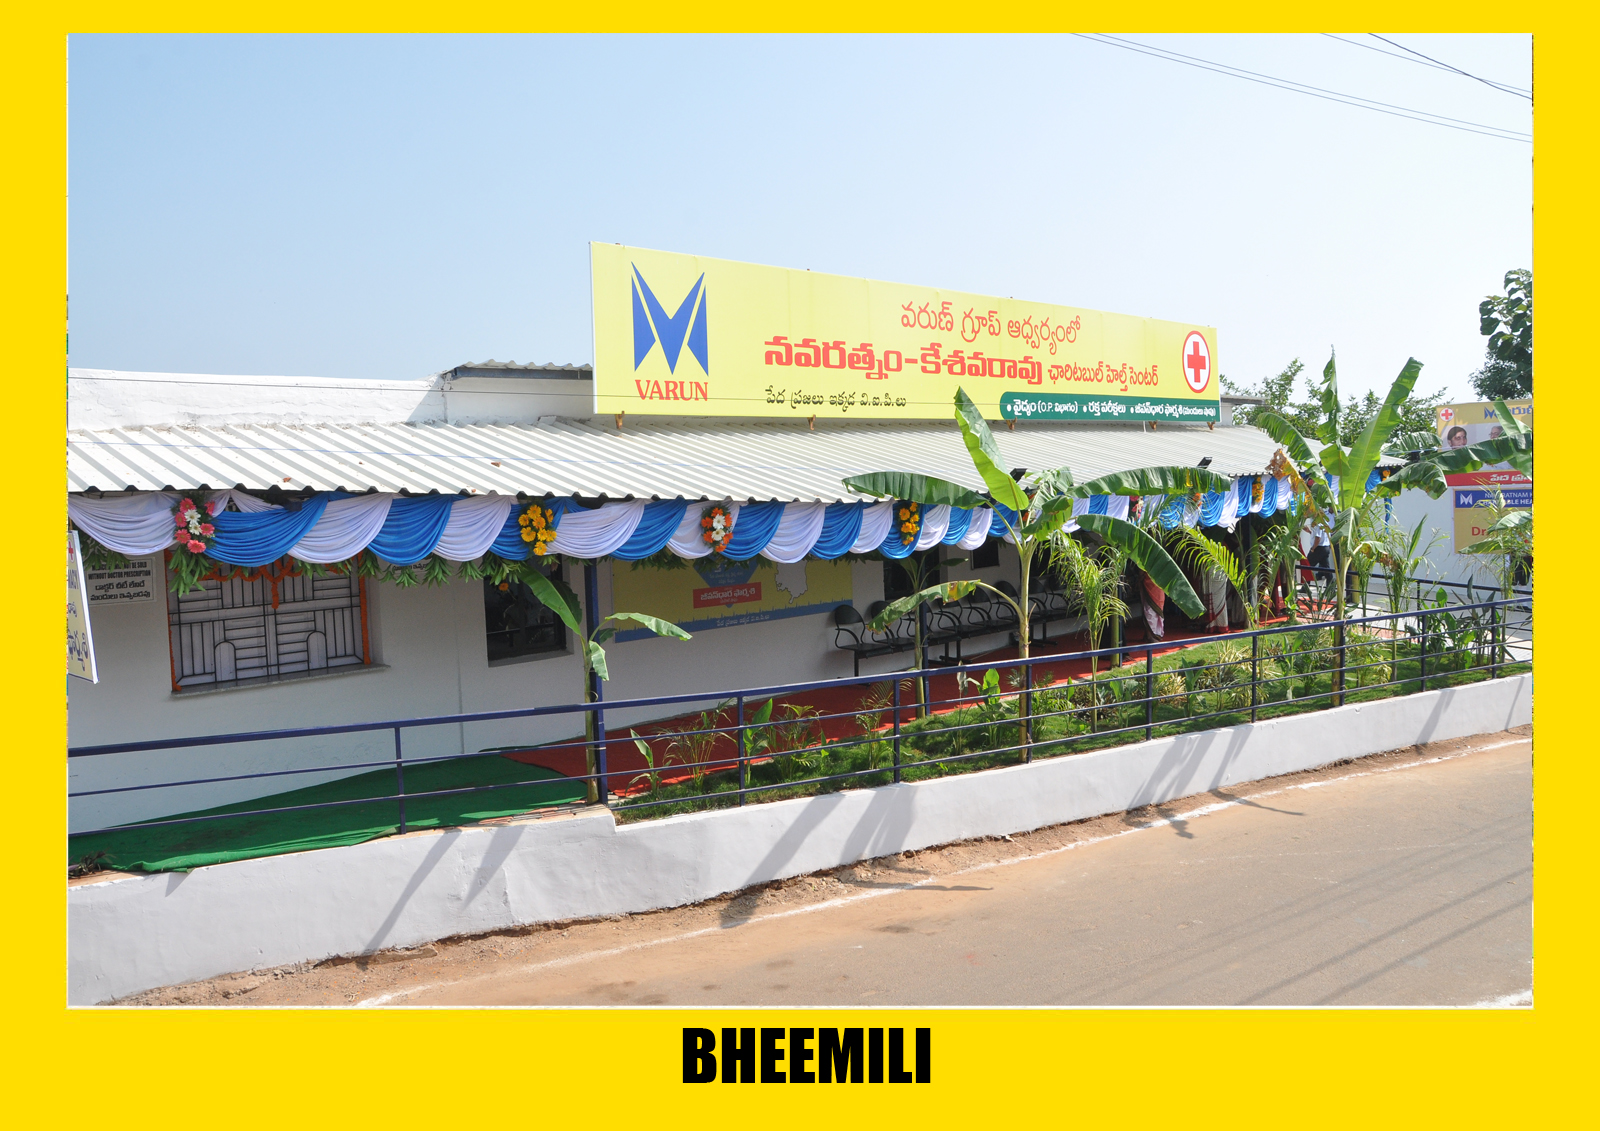 BHEEMILI health centre